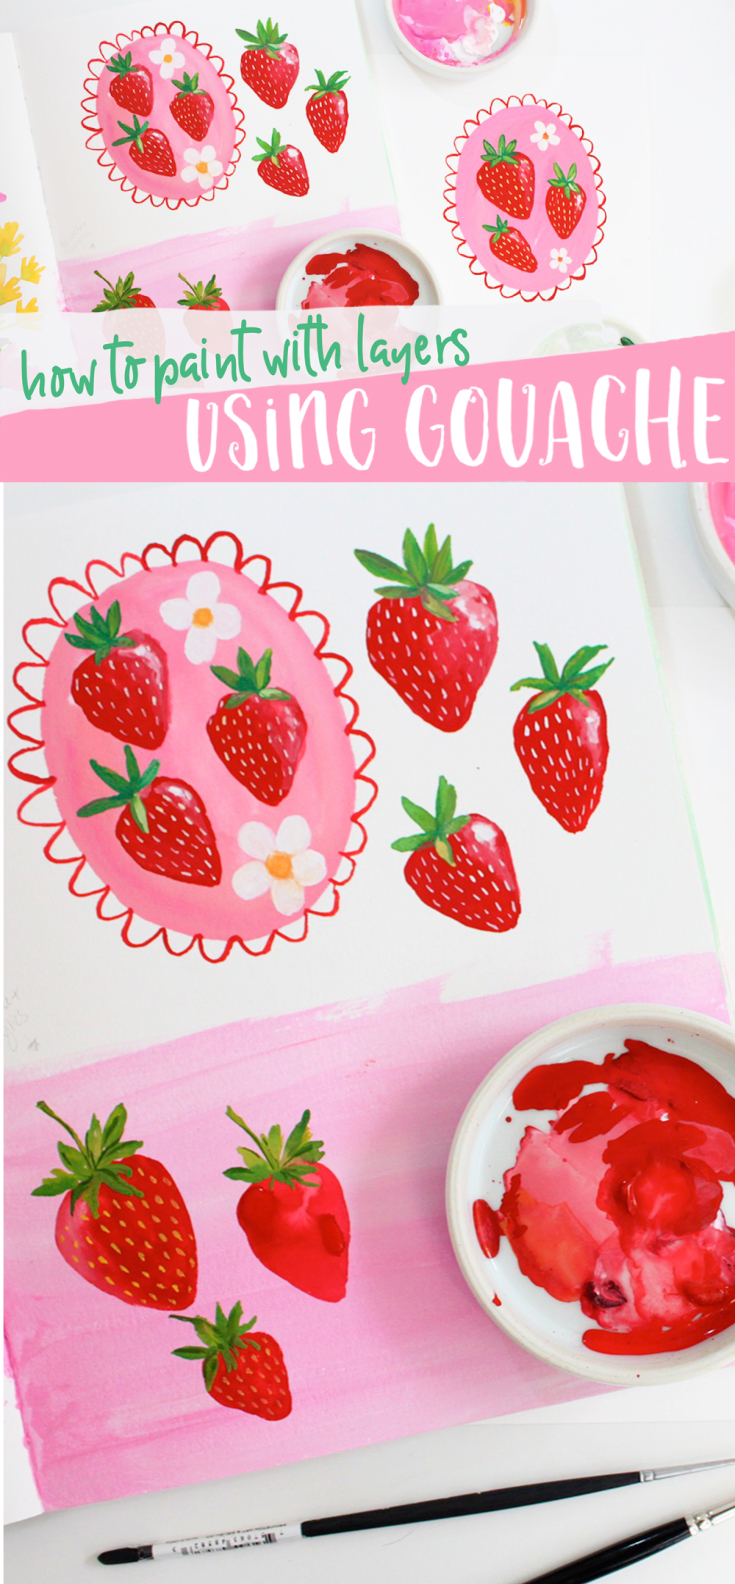 A Gouache Painting Tutorial: Paint These Strawberries And Learn All About Layering Gouache!